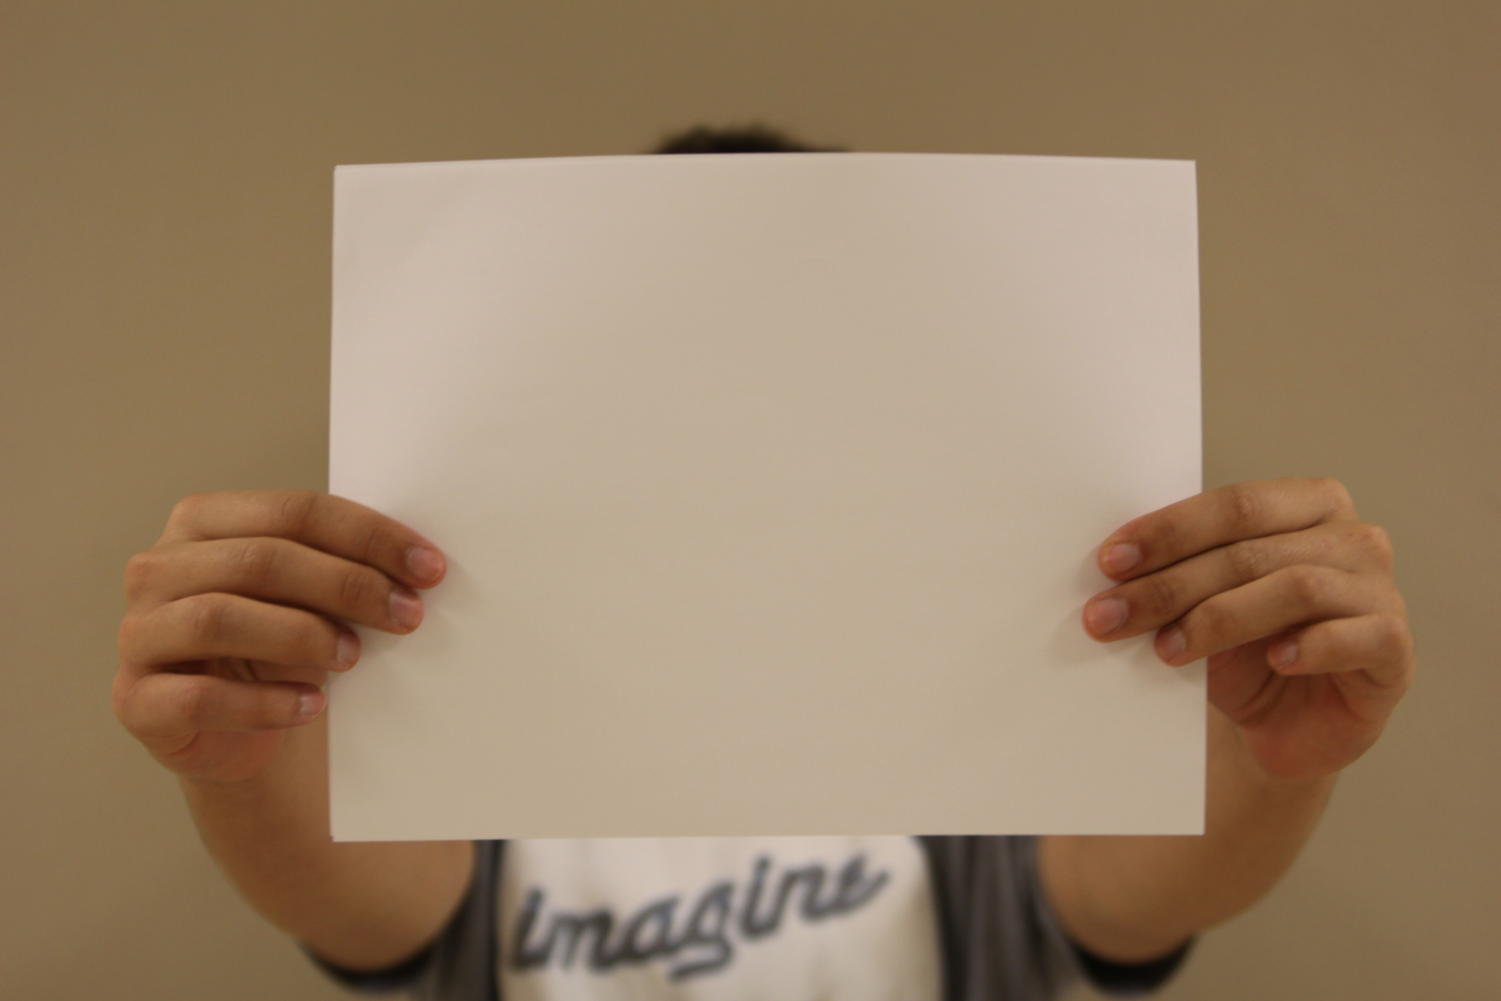 This piece of paper is a masterpiece. You just need to look at it from a different perspective.